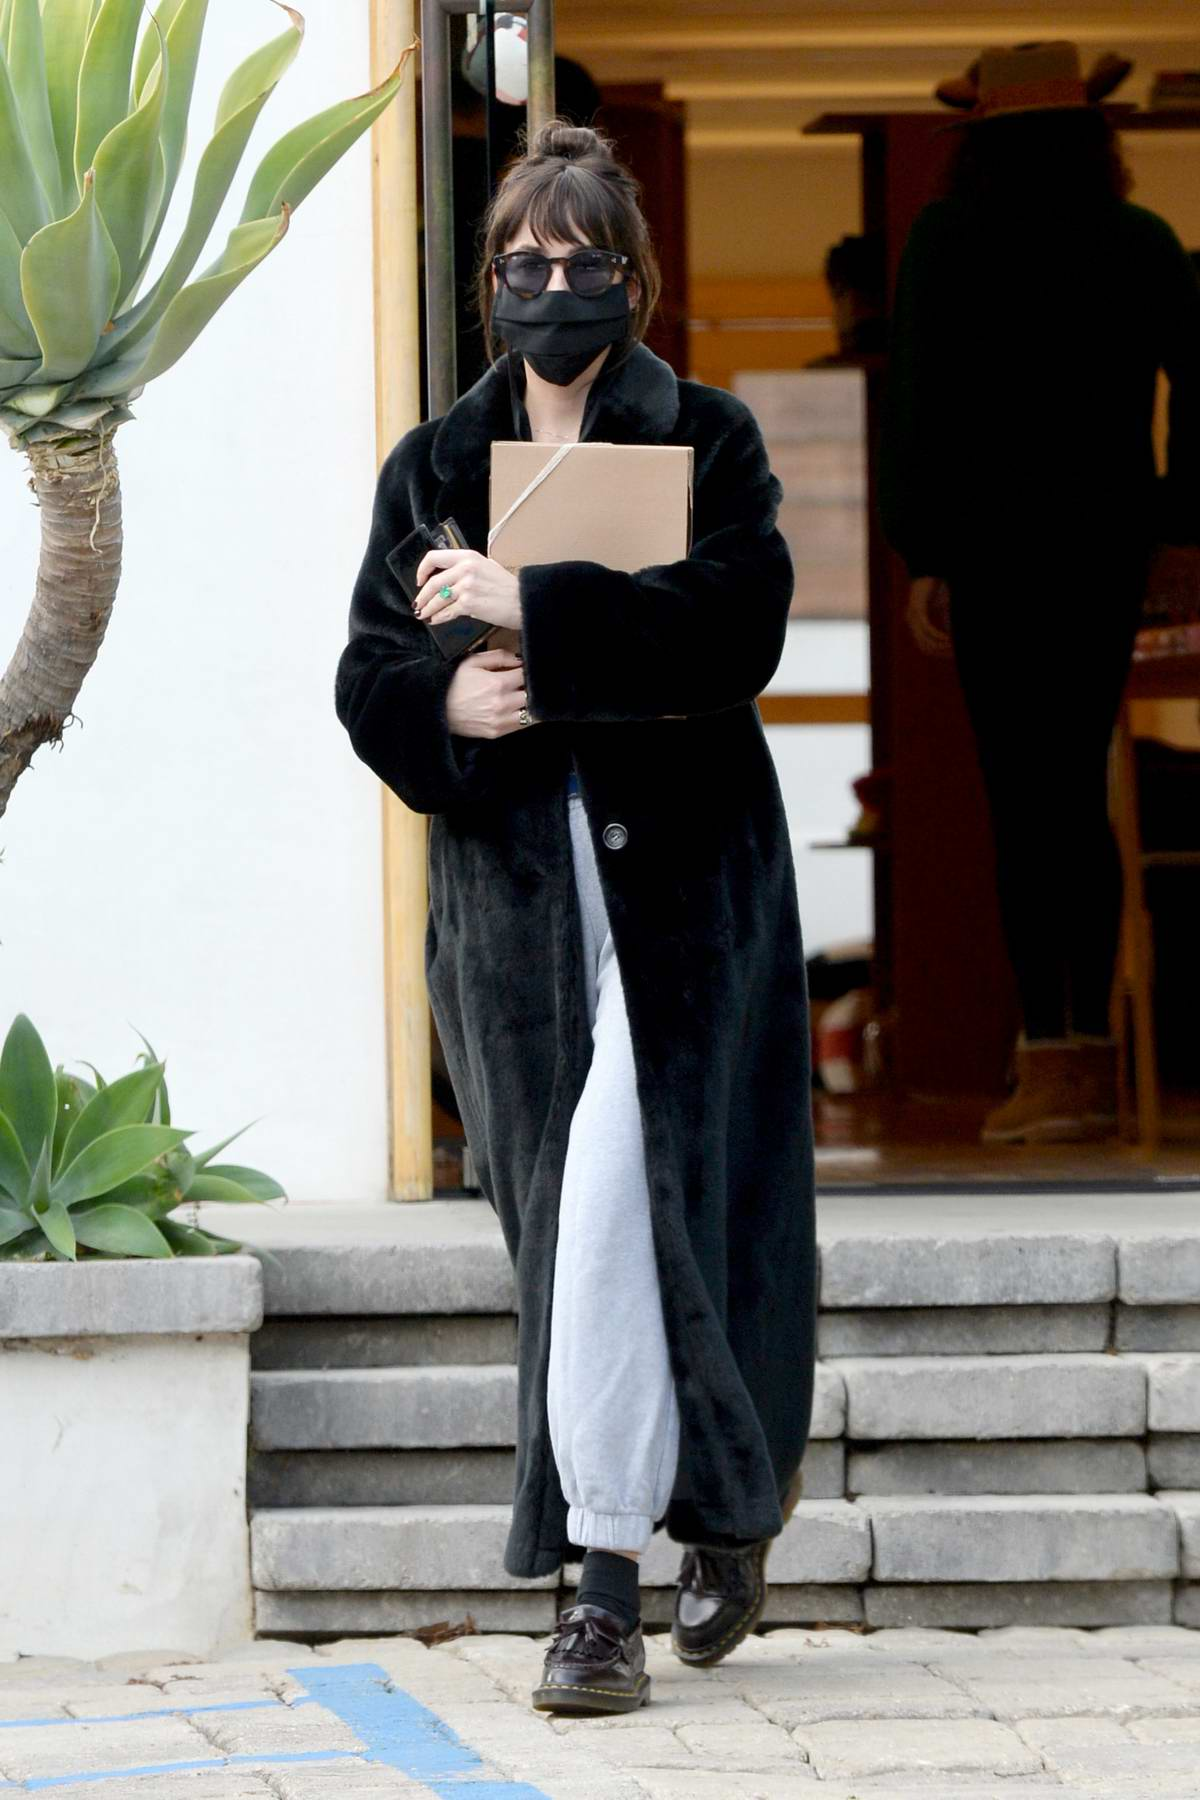 Dakota Johnson looks cozy in a black long coat while shopping at The Elder Statesman in West Hollywood, California